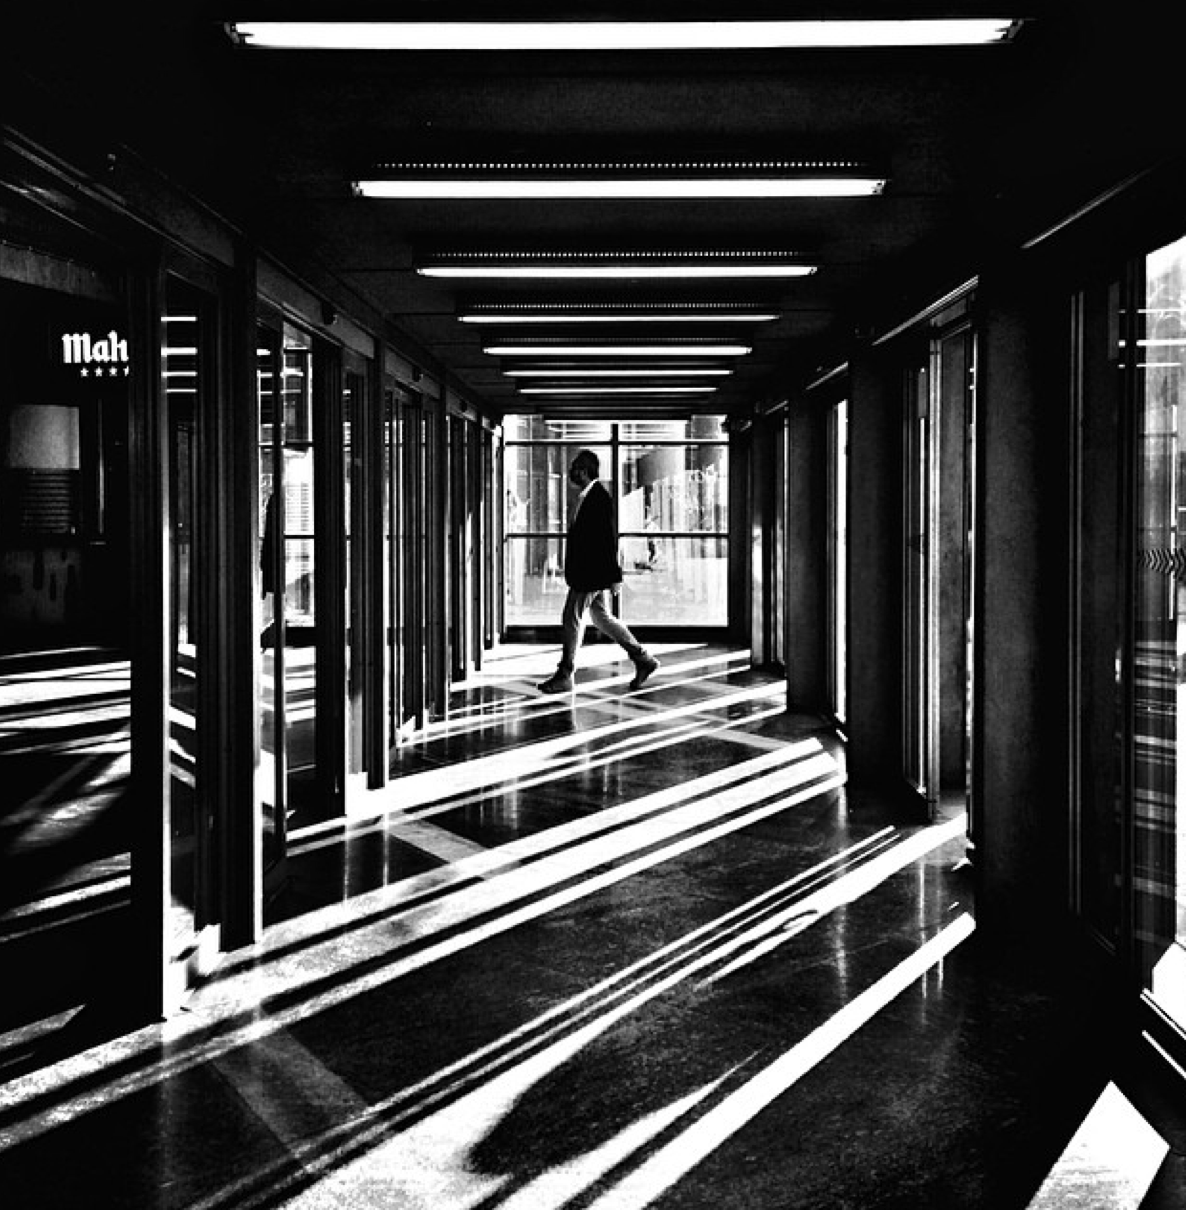 Photographer of the day: José Luis Barcia Fernandez and his Stunning Black & White iPhone Street Photos. - Resource